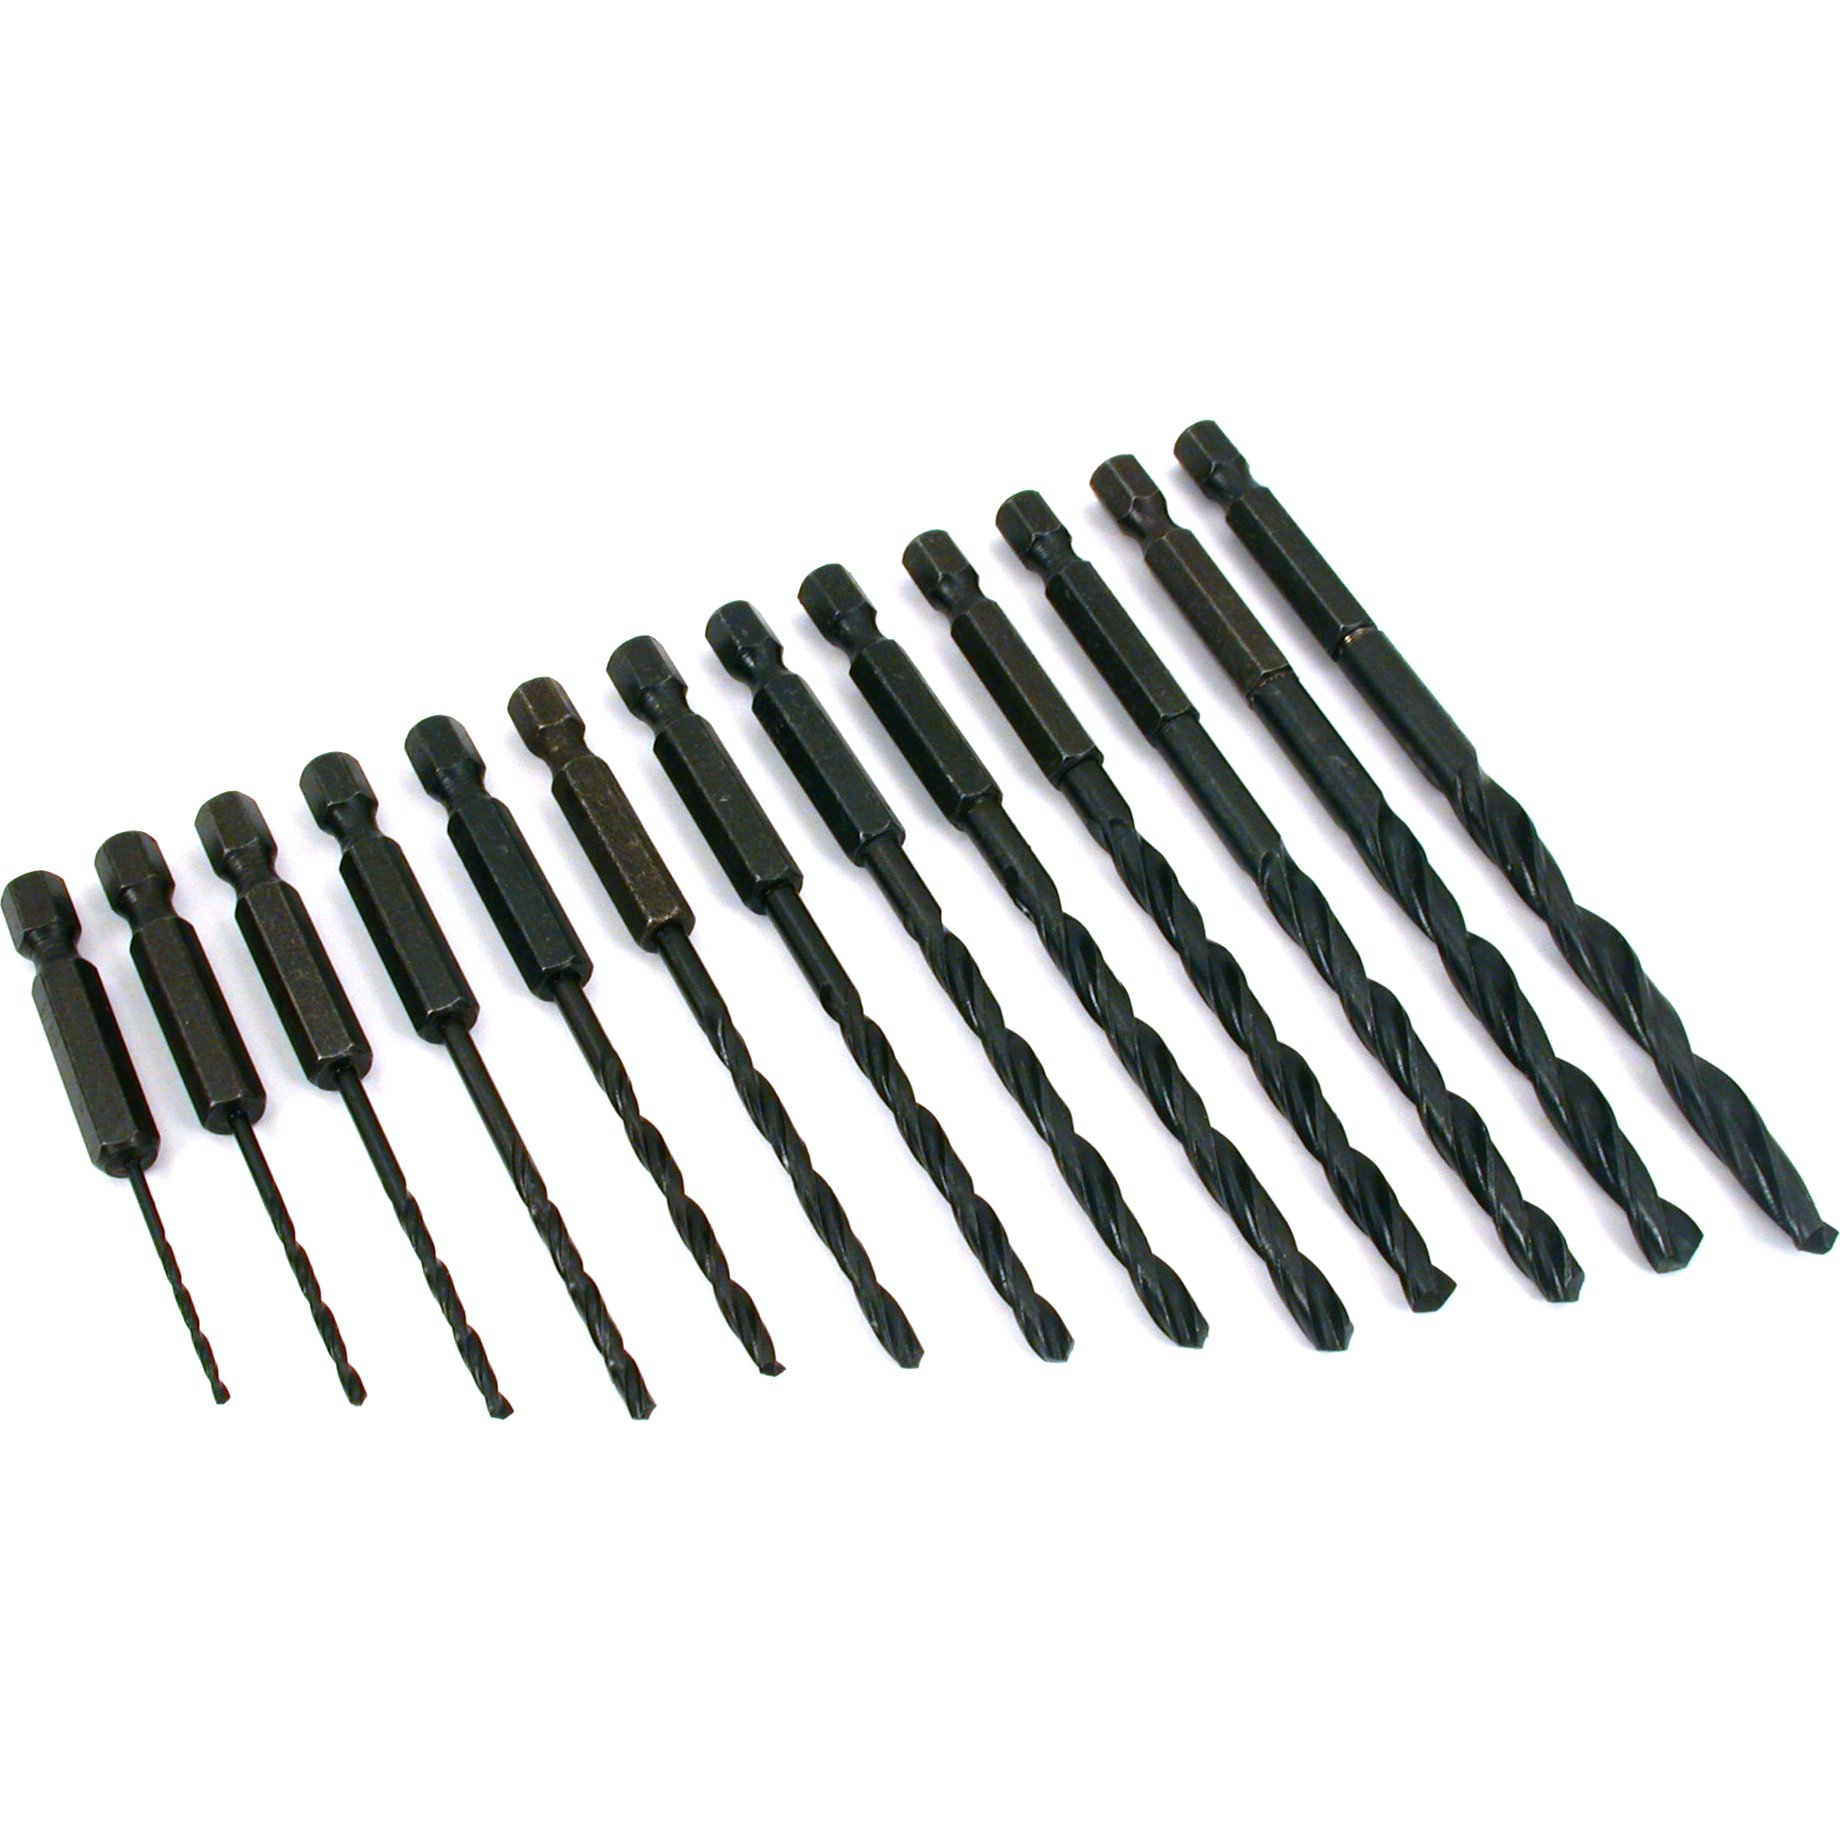 "Findingking 13 HSS Hex Head Drill Bits 1/16""-1/4"" at Sears.com"